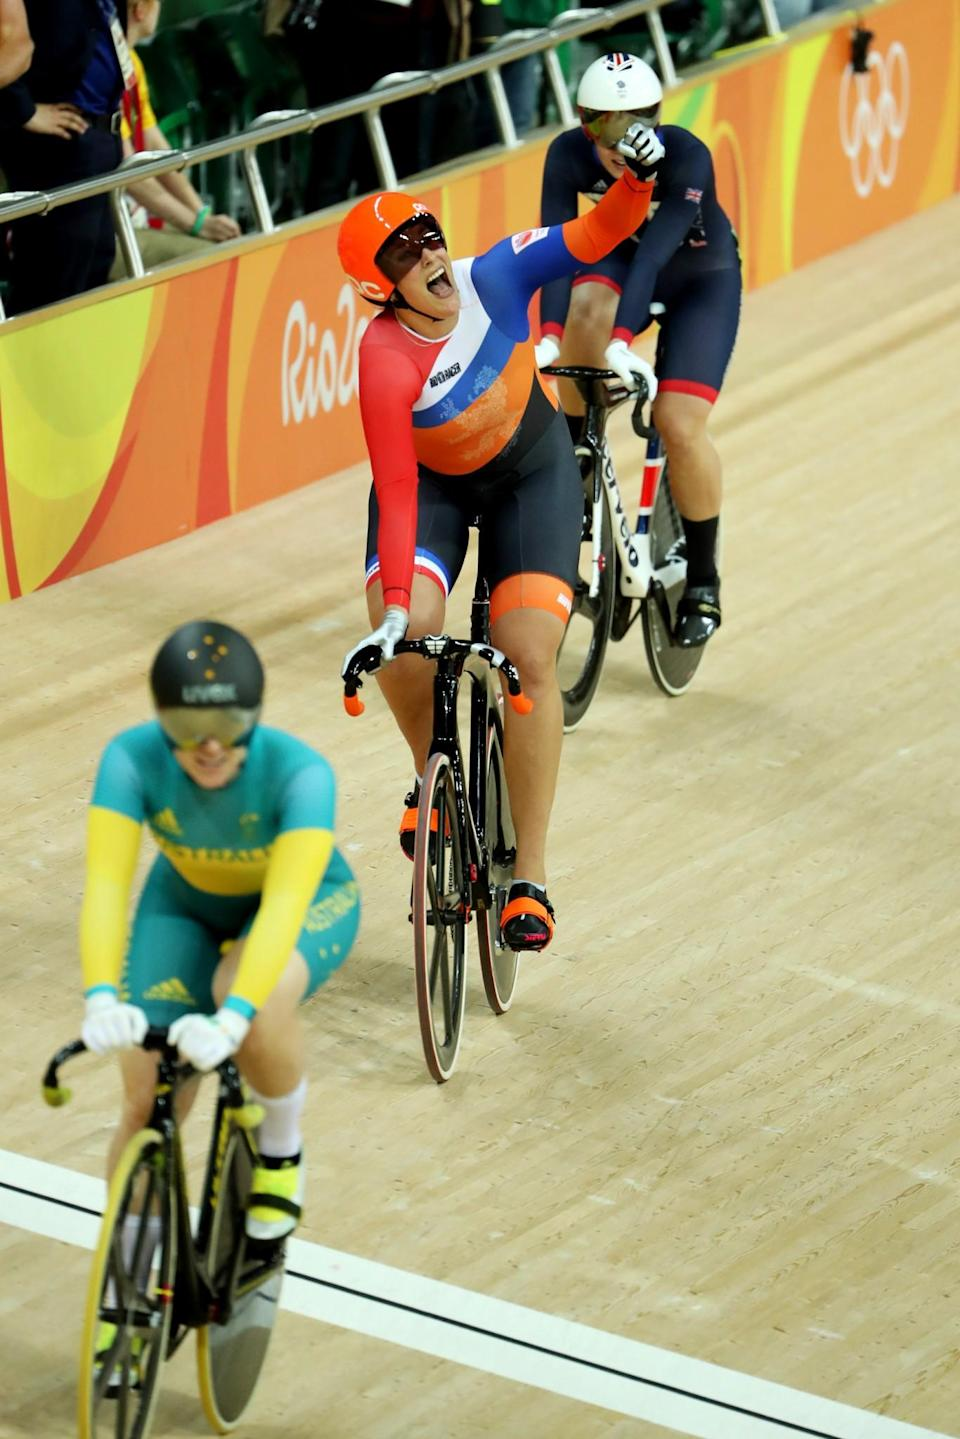 <p>Elis Ligtlee (C) of the Netherlands celebrates winning the gold medal in the during the Women's Keirin Final on Day 8 of the Rio 2016 Olympic Games at the Rio Olympic Velodrome on August 13, 2016 in Rio de Janeiro, Brazil. (Photo by Christian Petersen/Getty Images) </p>